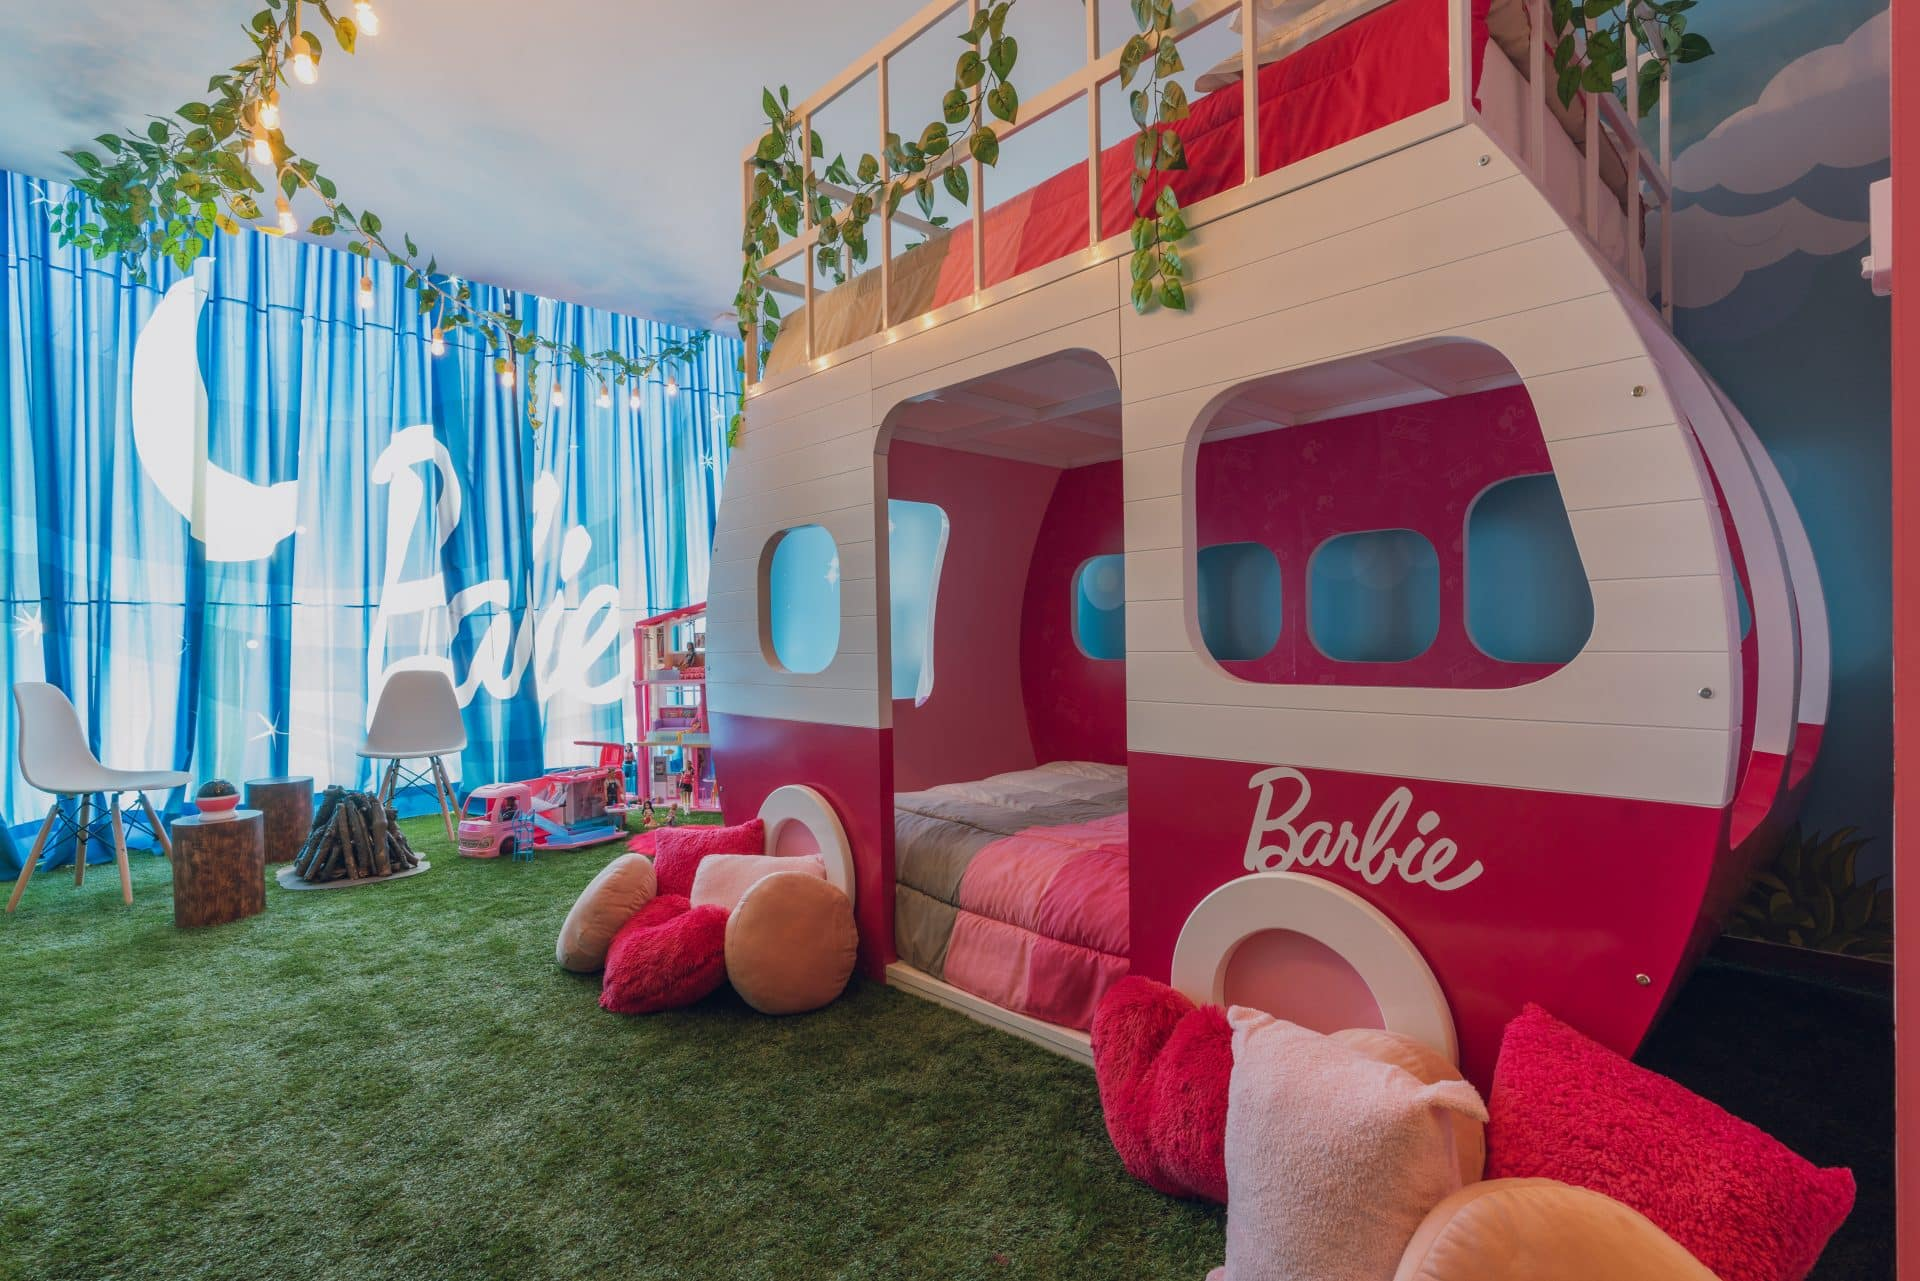 The Barbie Hotel Suite